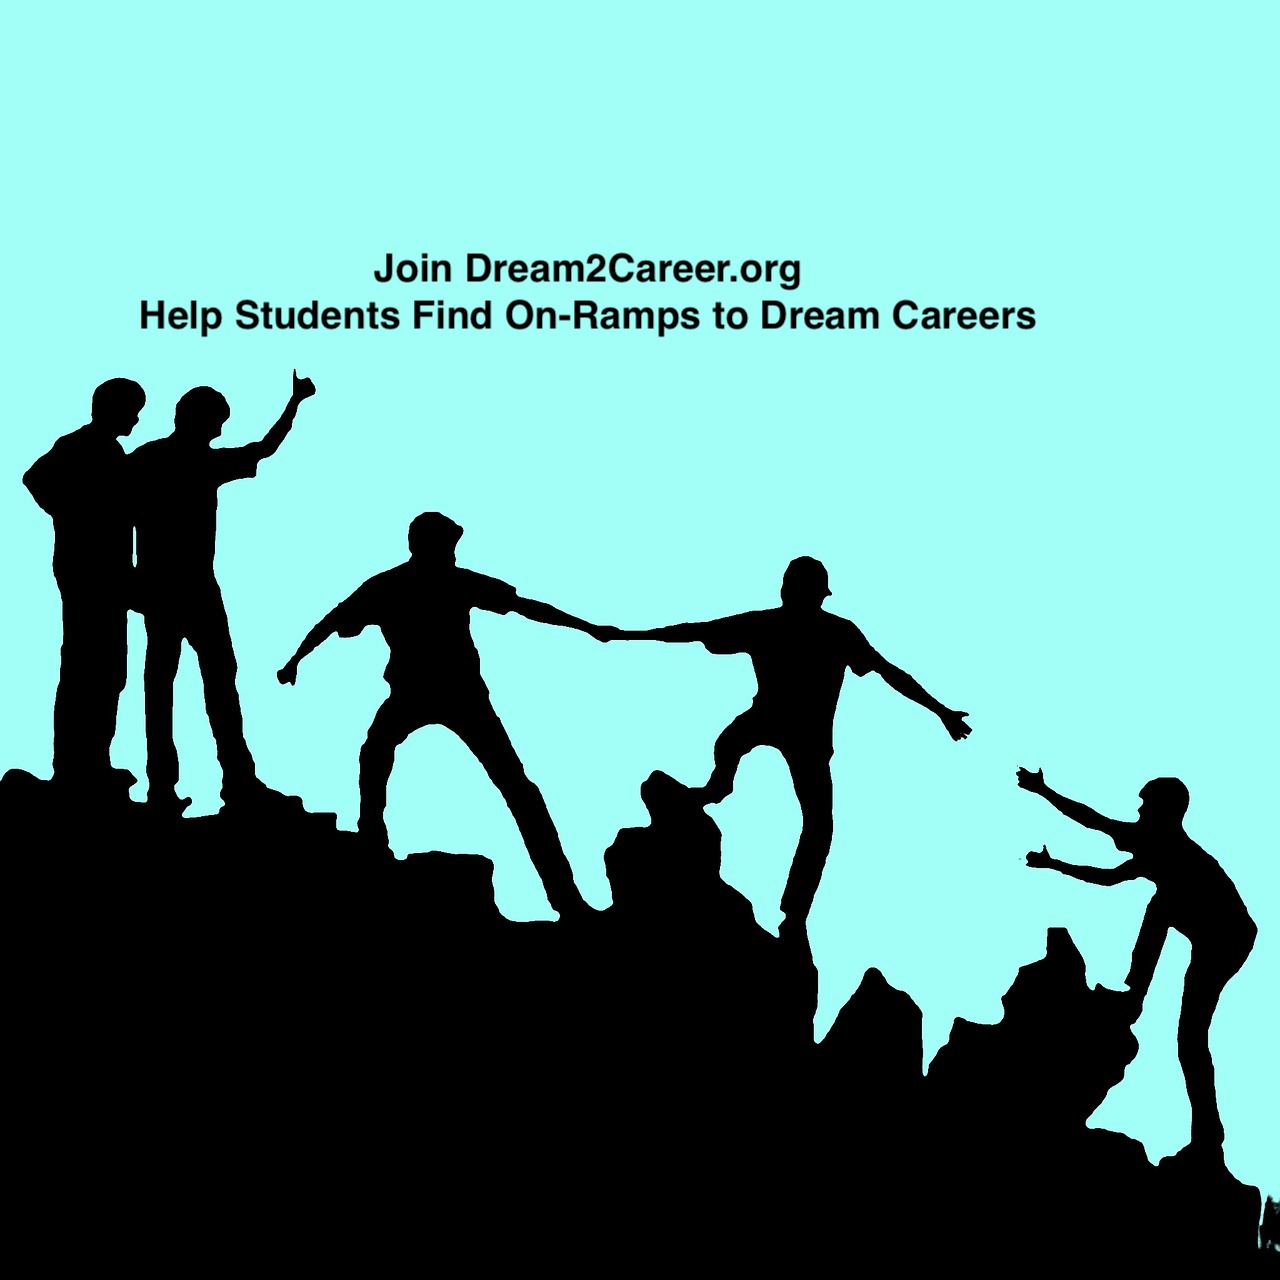 Dream2Career, LLC